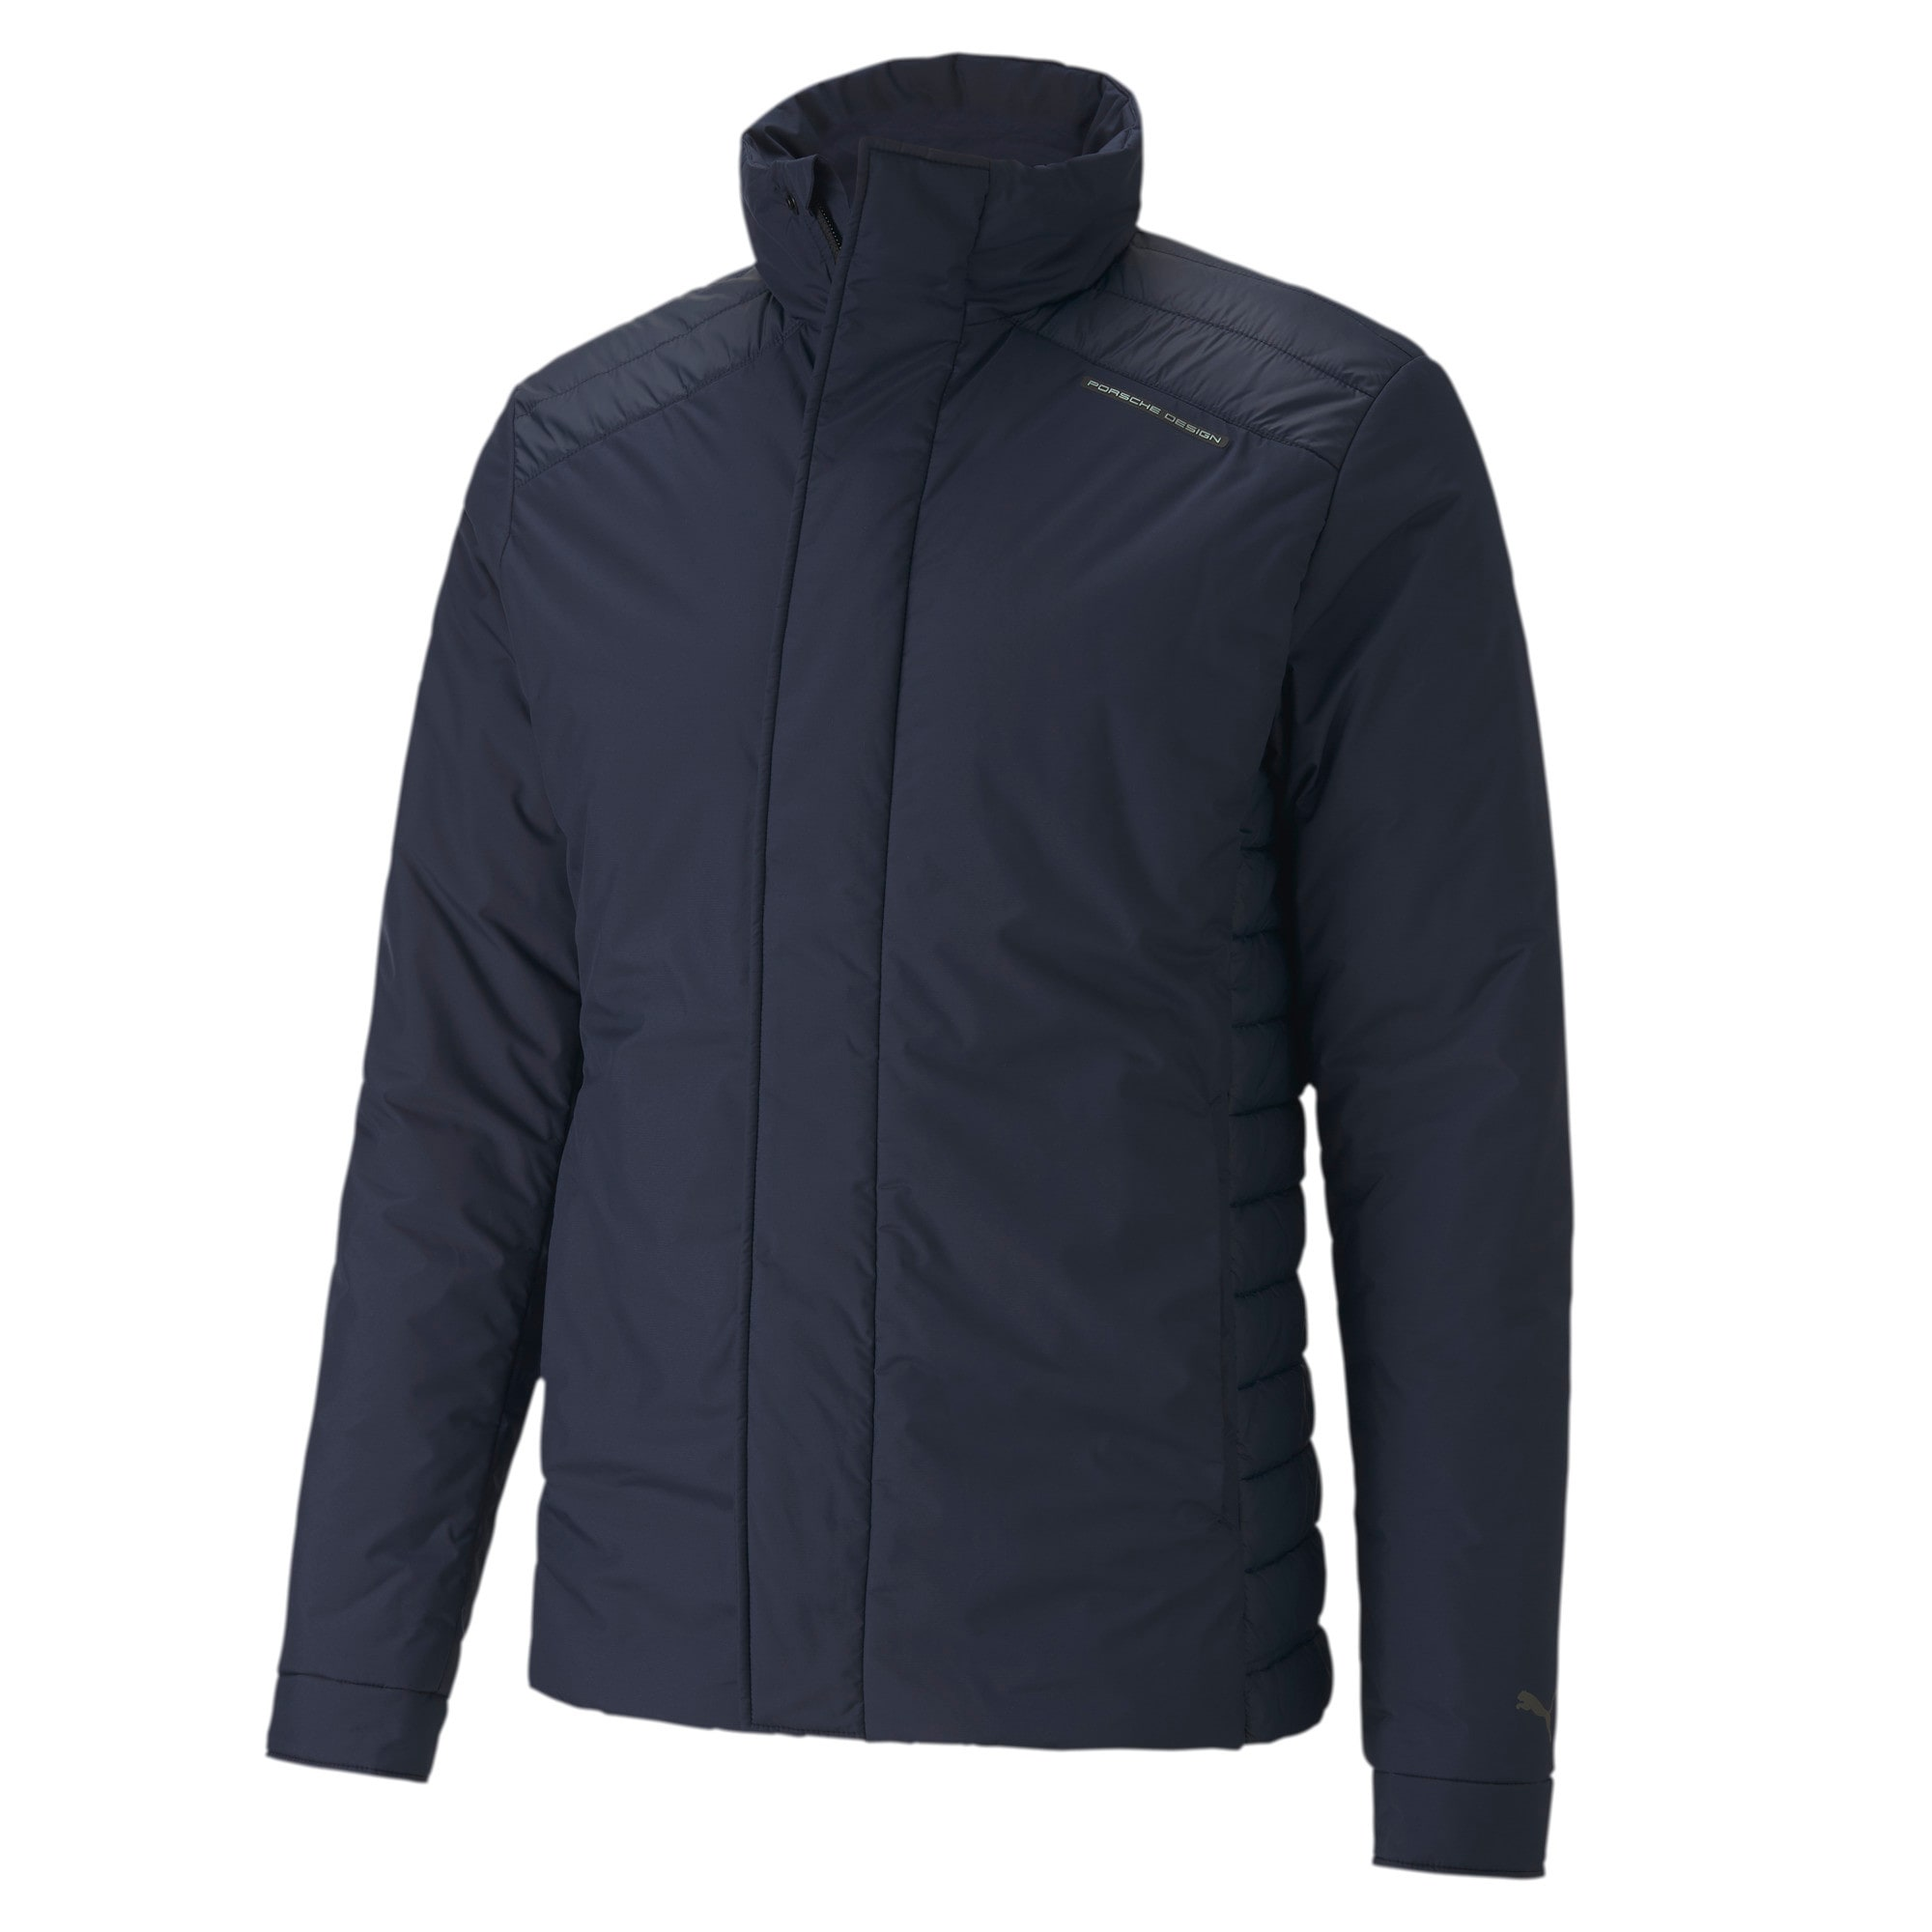 Thumbnail 4 of Porsche Design Men's Racing Jacket, Navy Blazer, medium